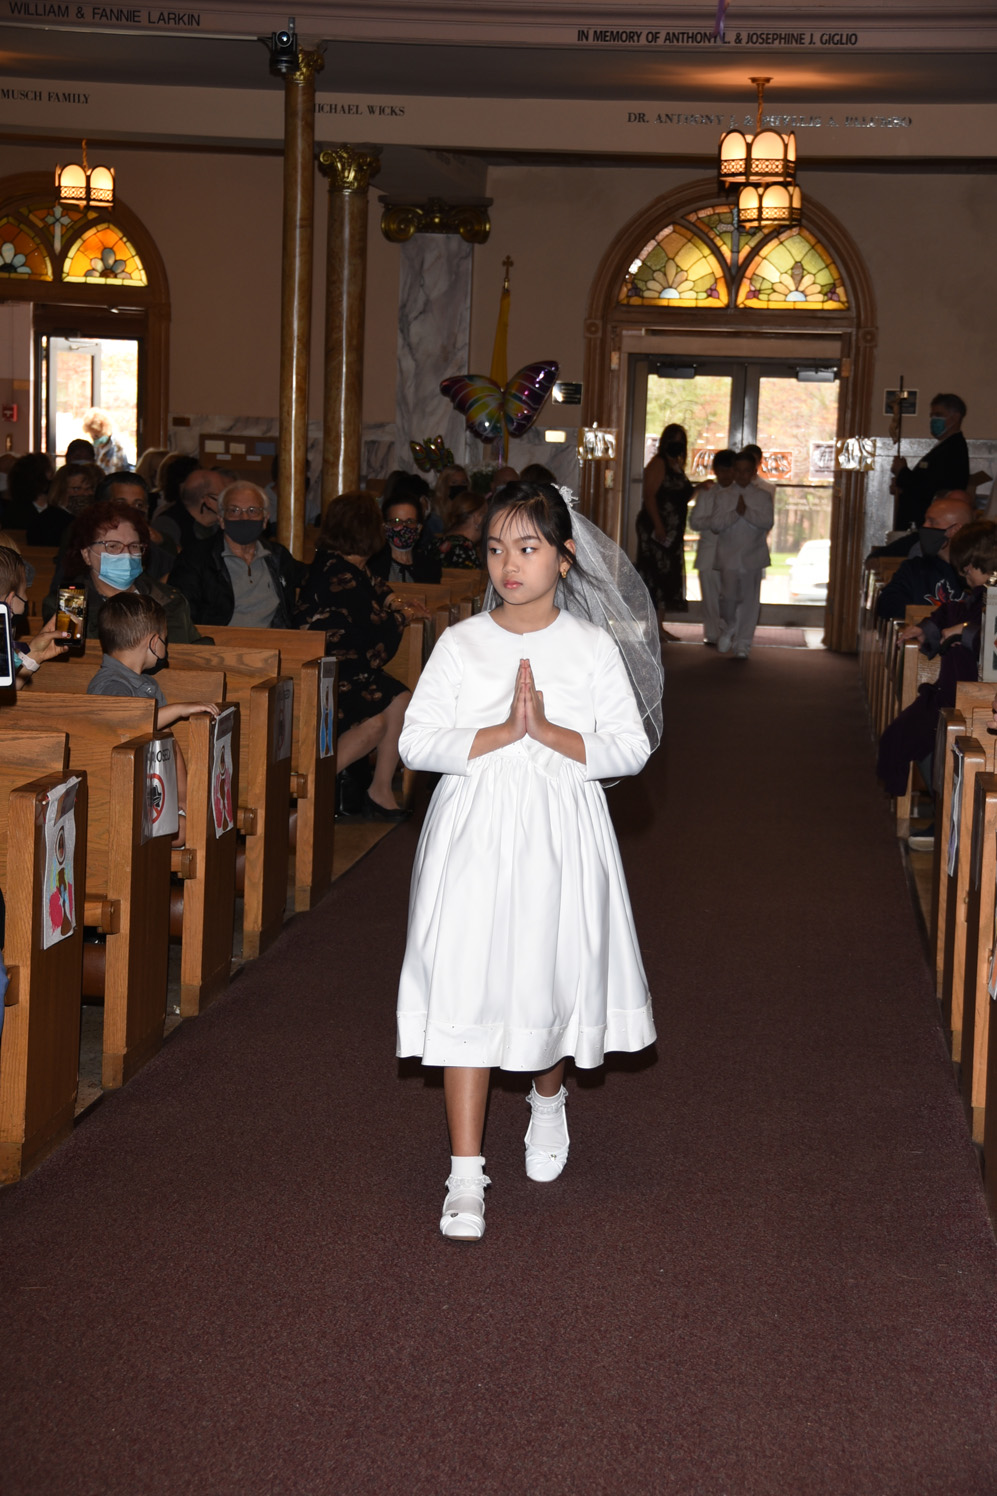 FIRST-COMMUNION-MAY-2-2021-1001001032